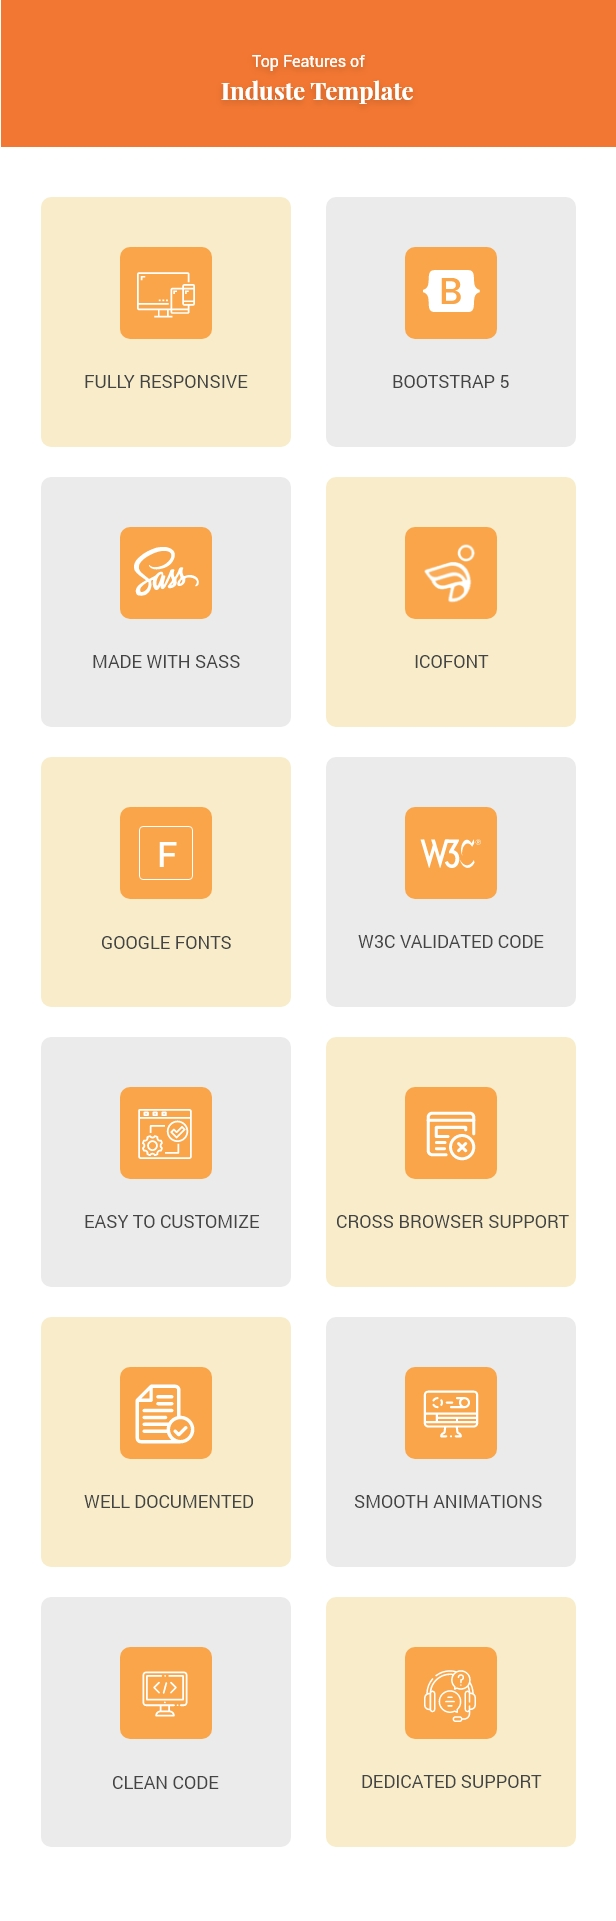 Induste - Industrial & Factory Bootstrap 5 Template - 2